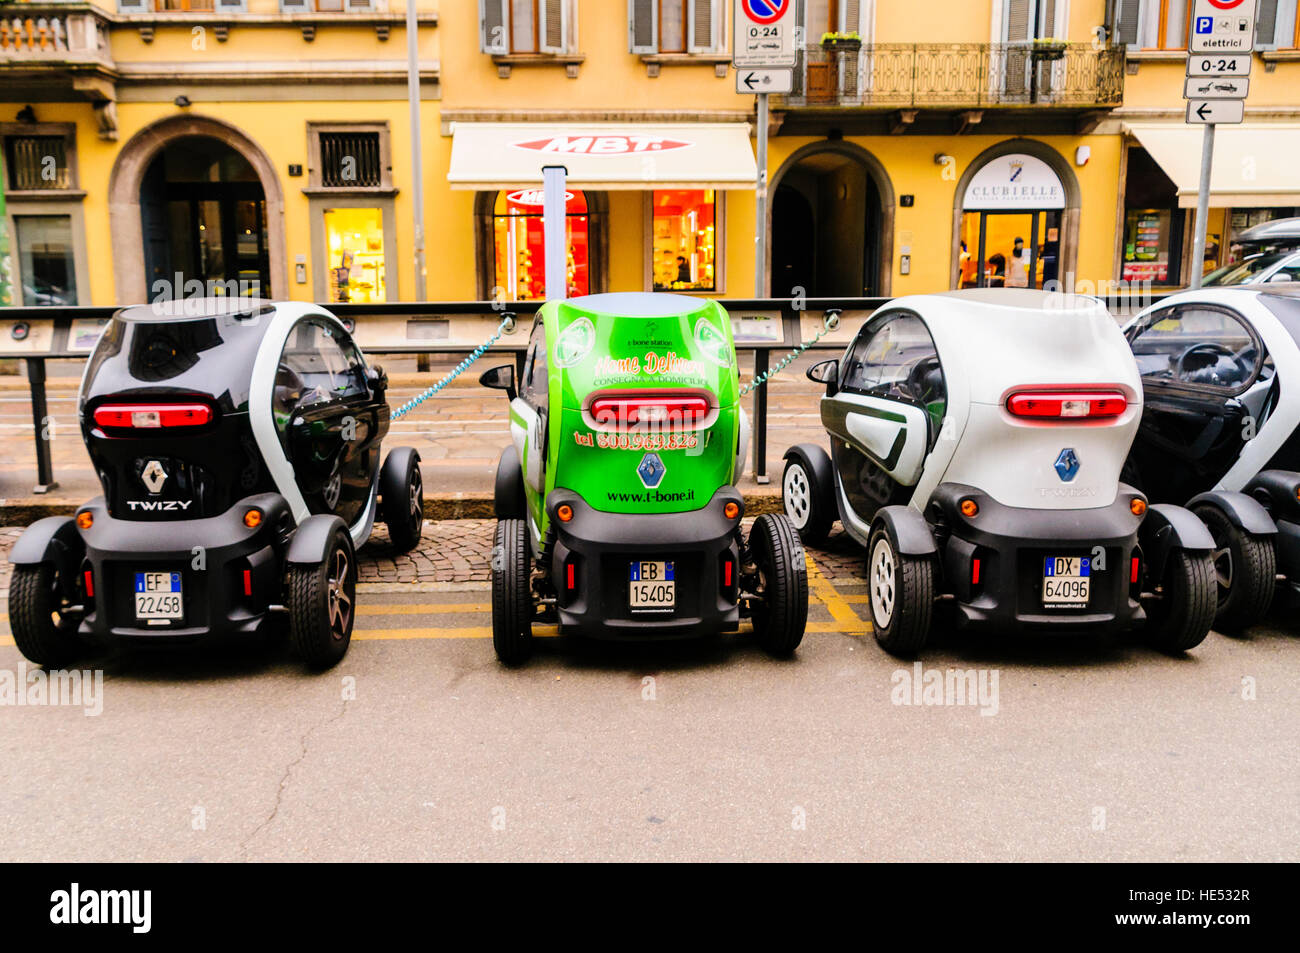 renault twizy electric car charge stock photos renault twizy electric car charge stock images. Black Bedroom Furniture Sets. Home Design Ideas